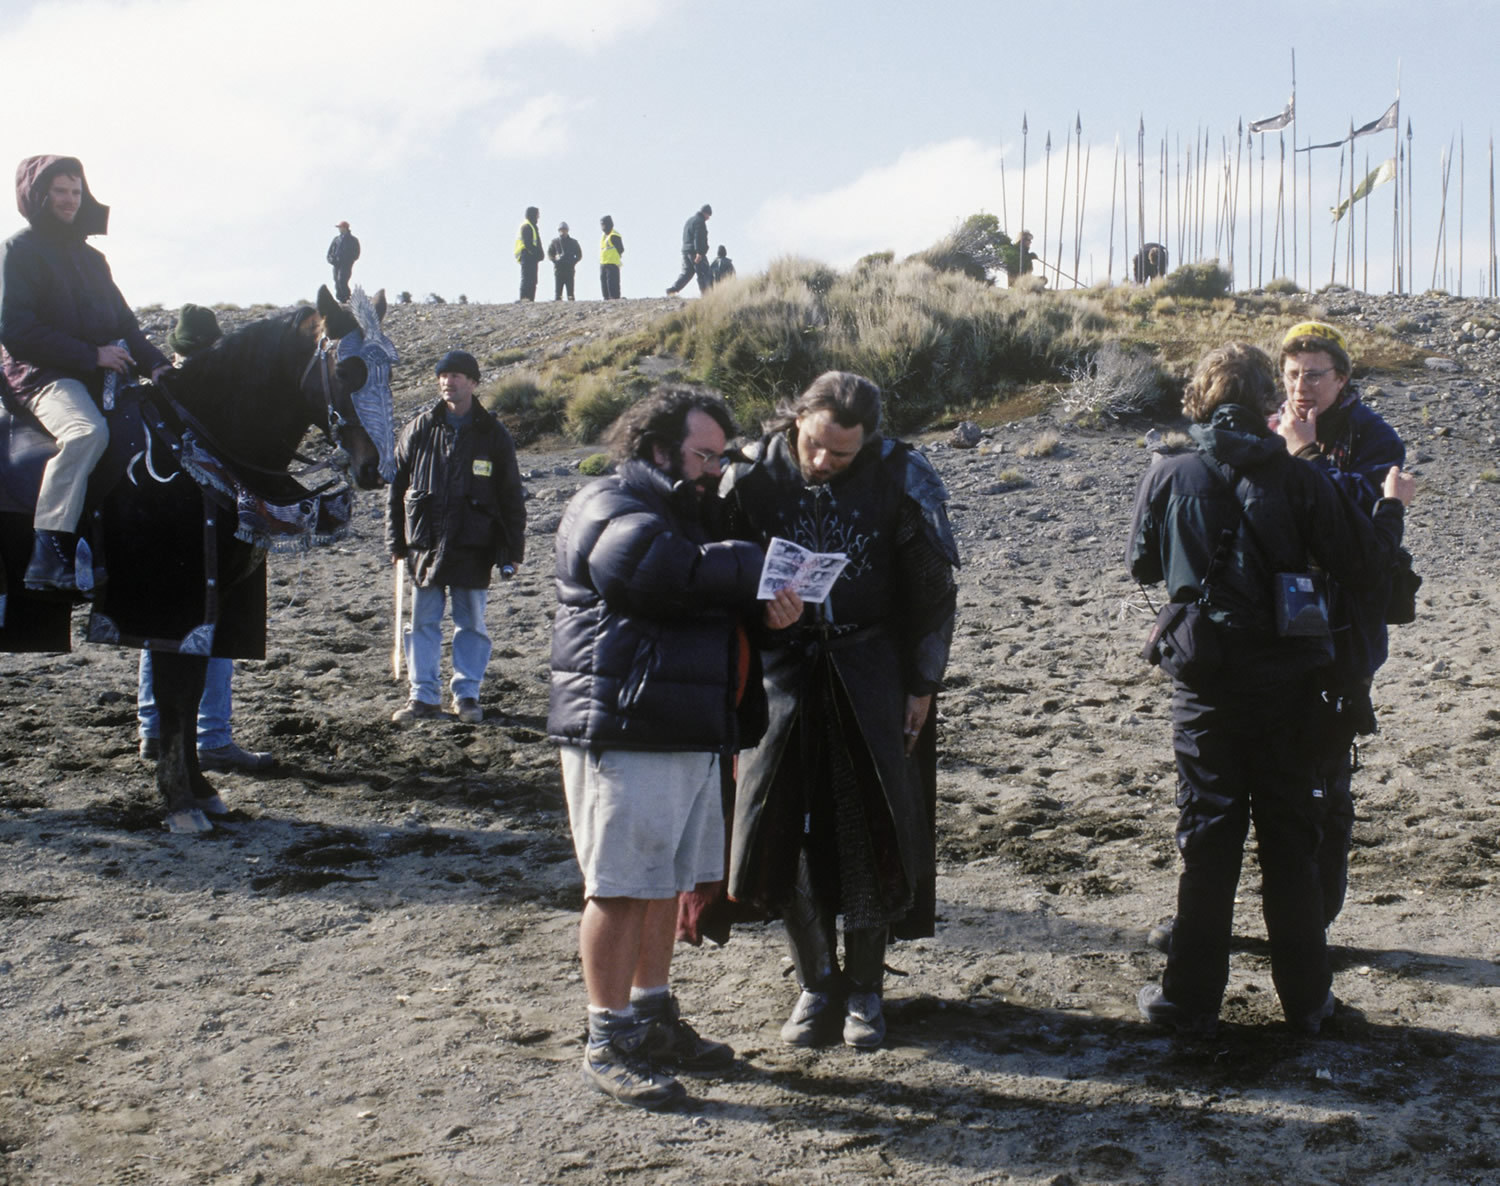 The Lord of the Rings: The Return of the King (2003) Behind the Scenes